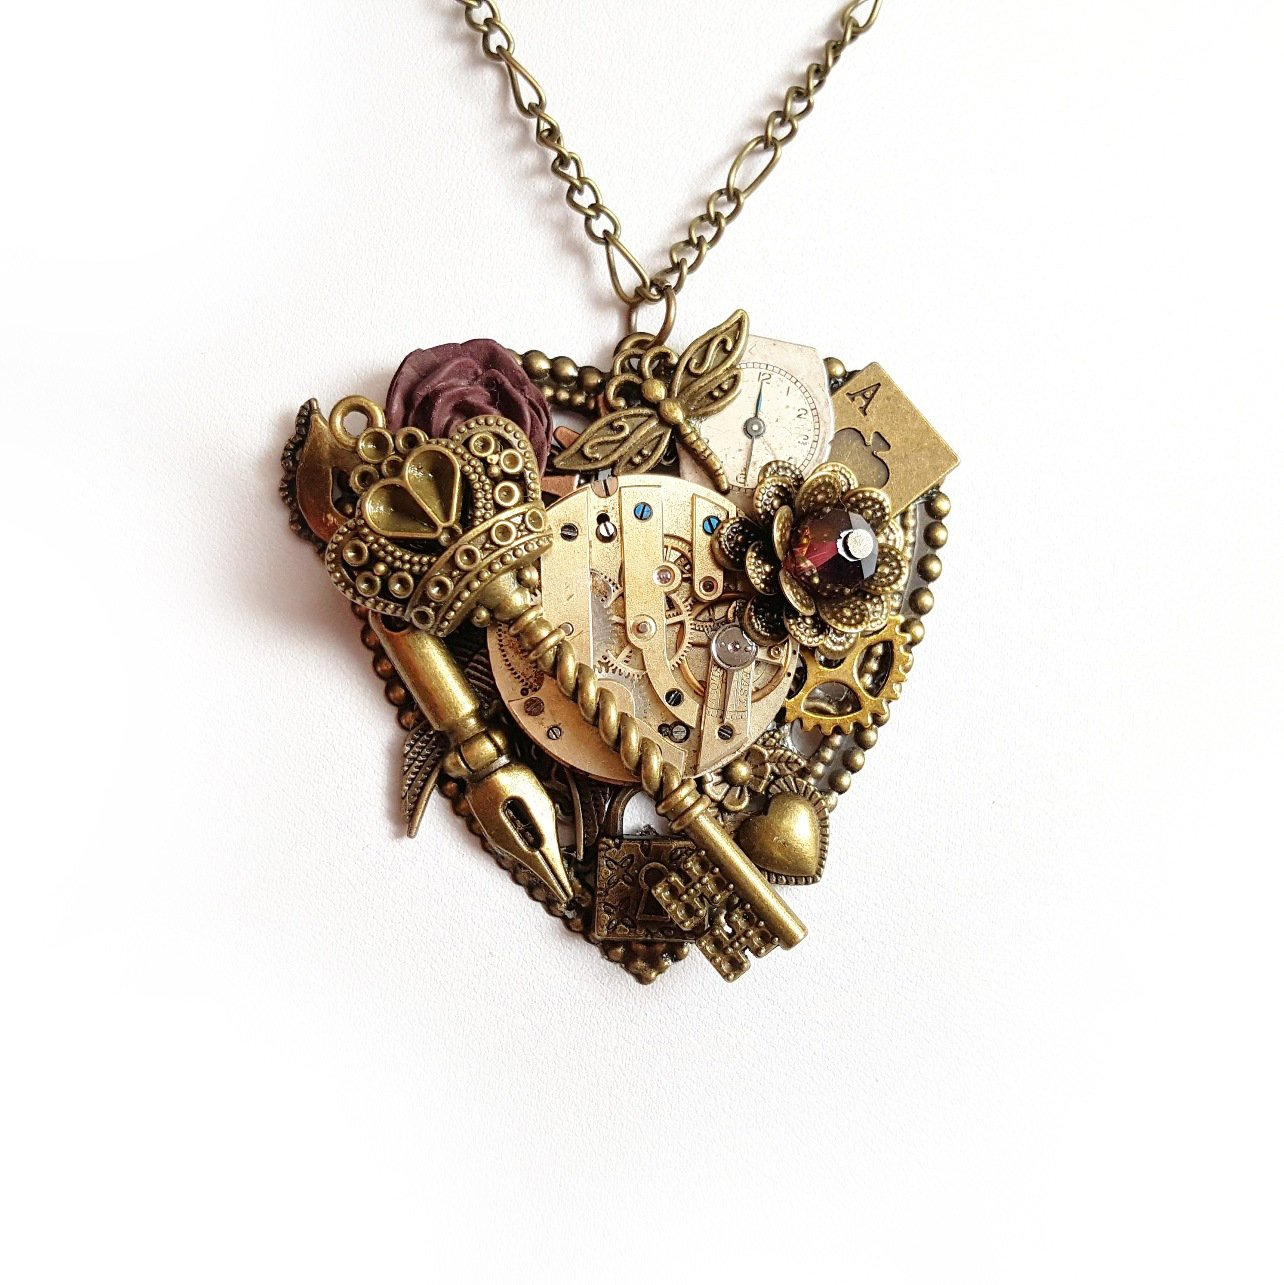 Steampunk Dark Heart Pendant  Steampunk Jewellery. White Gold Bangle. Claddagh Bands. Virgo Pendant. Plated Chains. Winston Engagement Rings. Natural Emerald Earrings. Purple Heart Wedding Rings. Kay Jewelers Diamond Stud Earrings